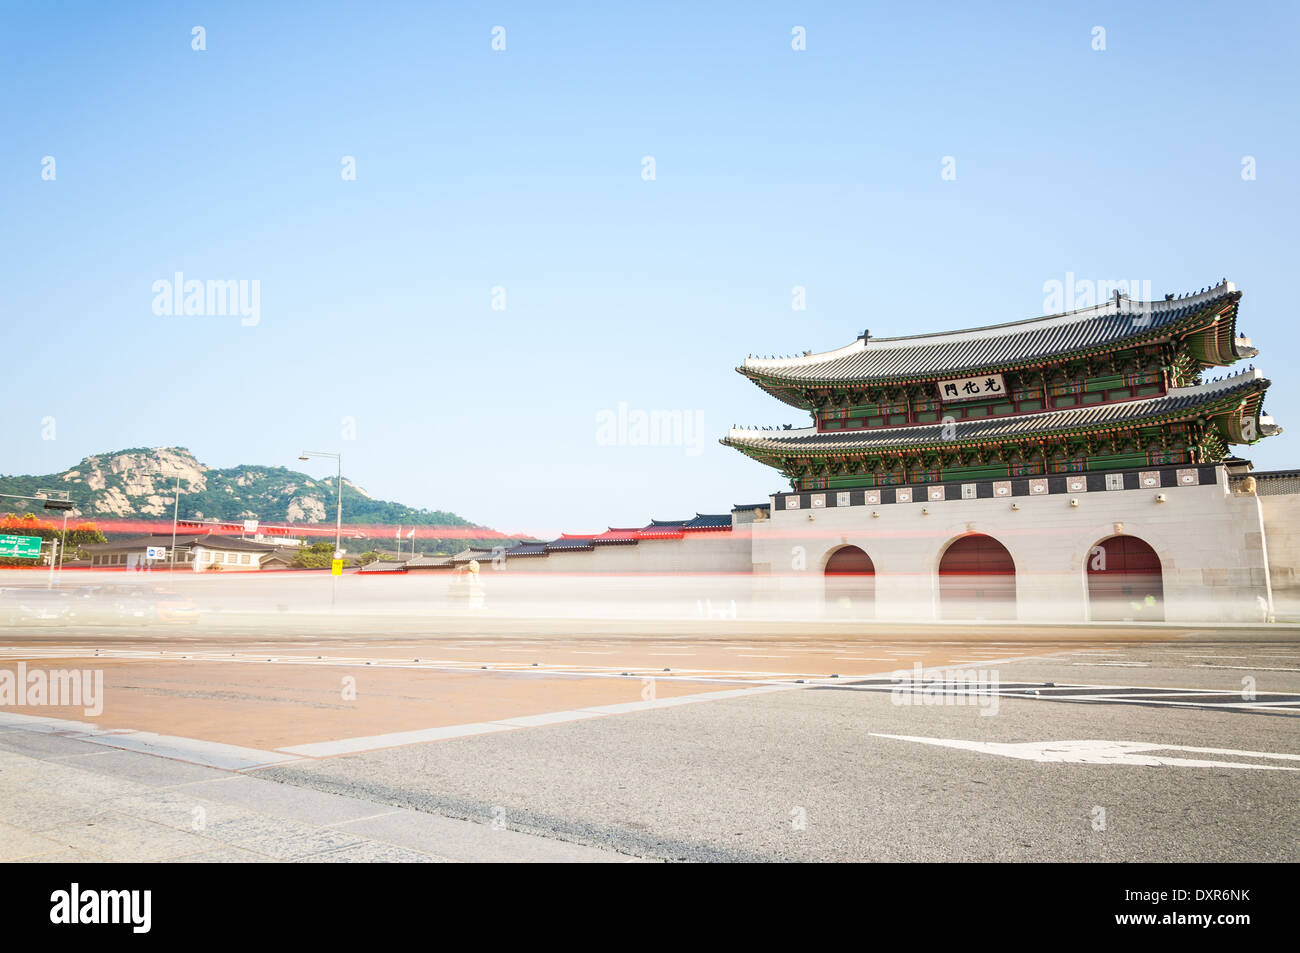 Traditionelle koreanische Architektur im Gyeongbokgung Palace in Seoul, Südkorea. Stockbild